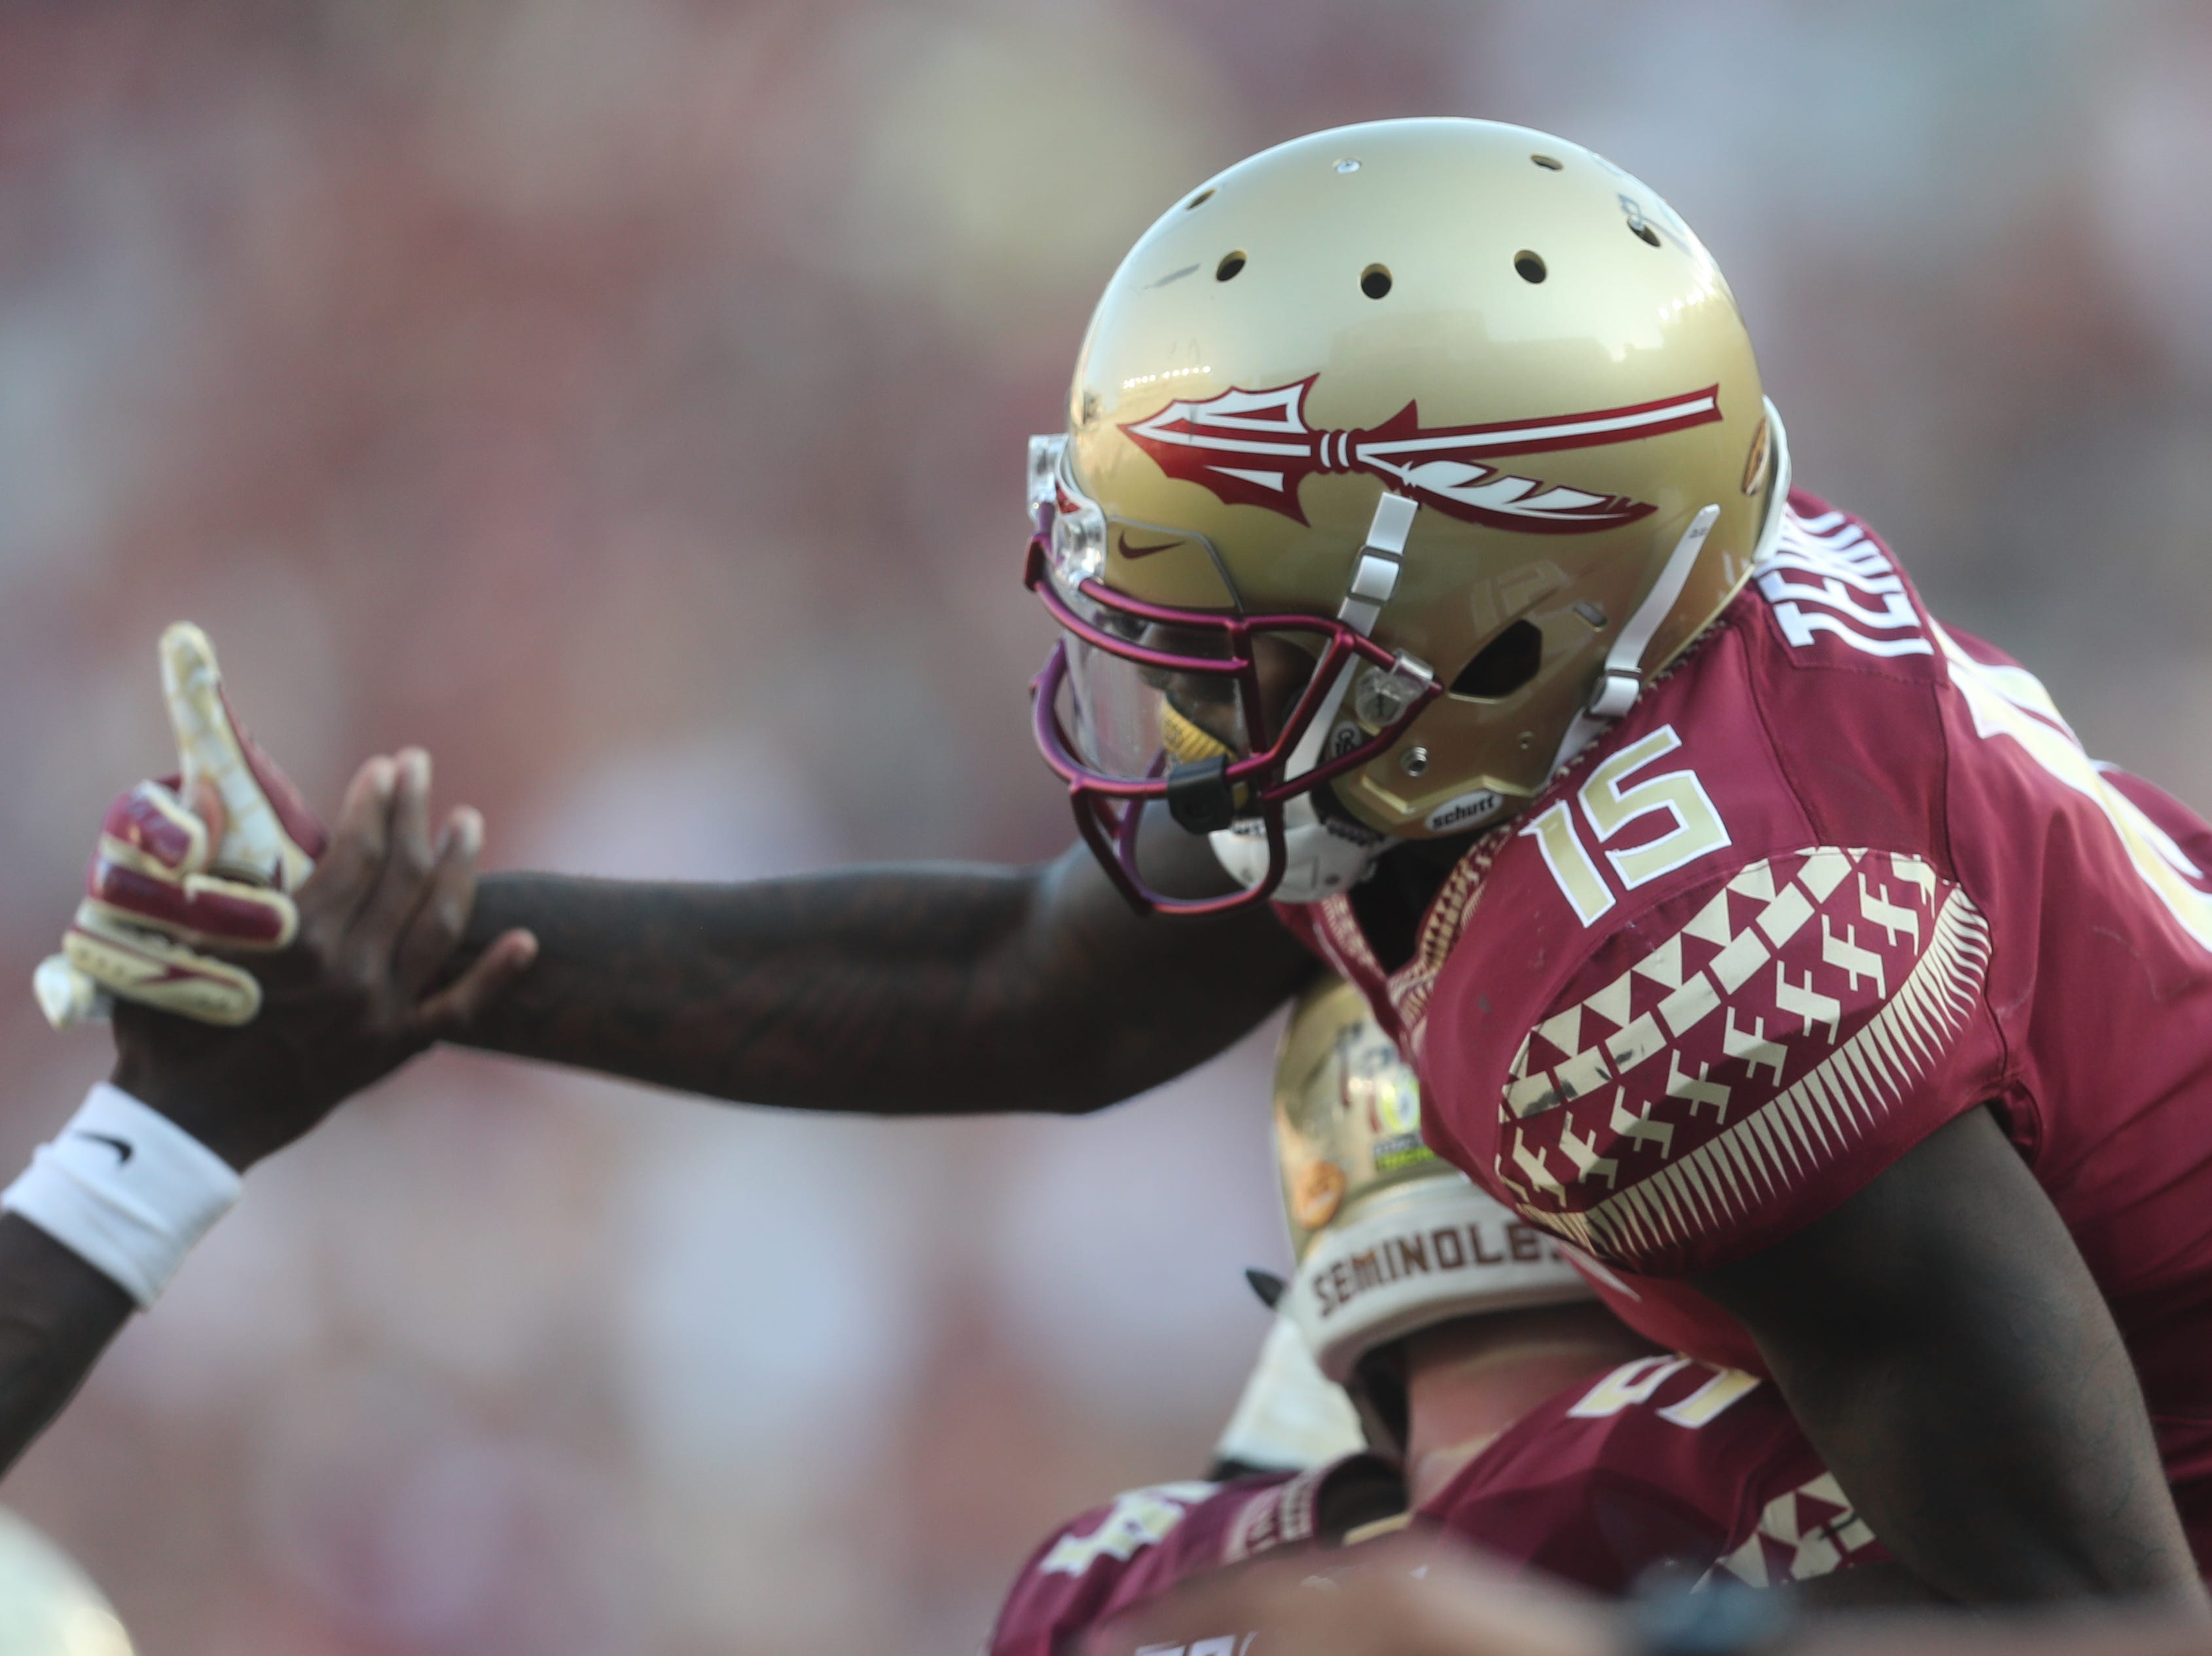 Florida State Seminoles wide receiver Tamorrion Terry (15) celebrates after a touchdown during a game between the Florida State University Seminoles and the Northern Illinois University Huskies at Doak S. Campbell Stadium in Tallahassee, Fla. Saturday, September 22, 2018.